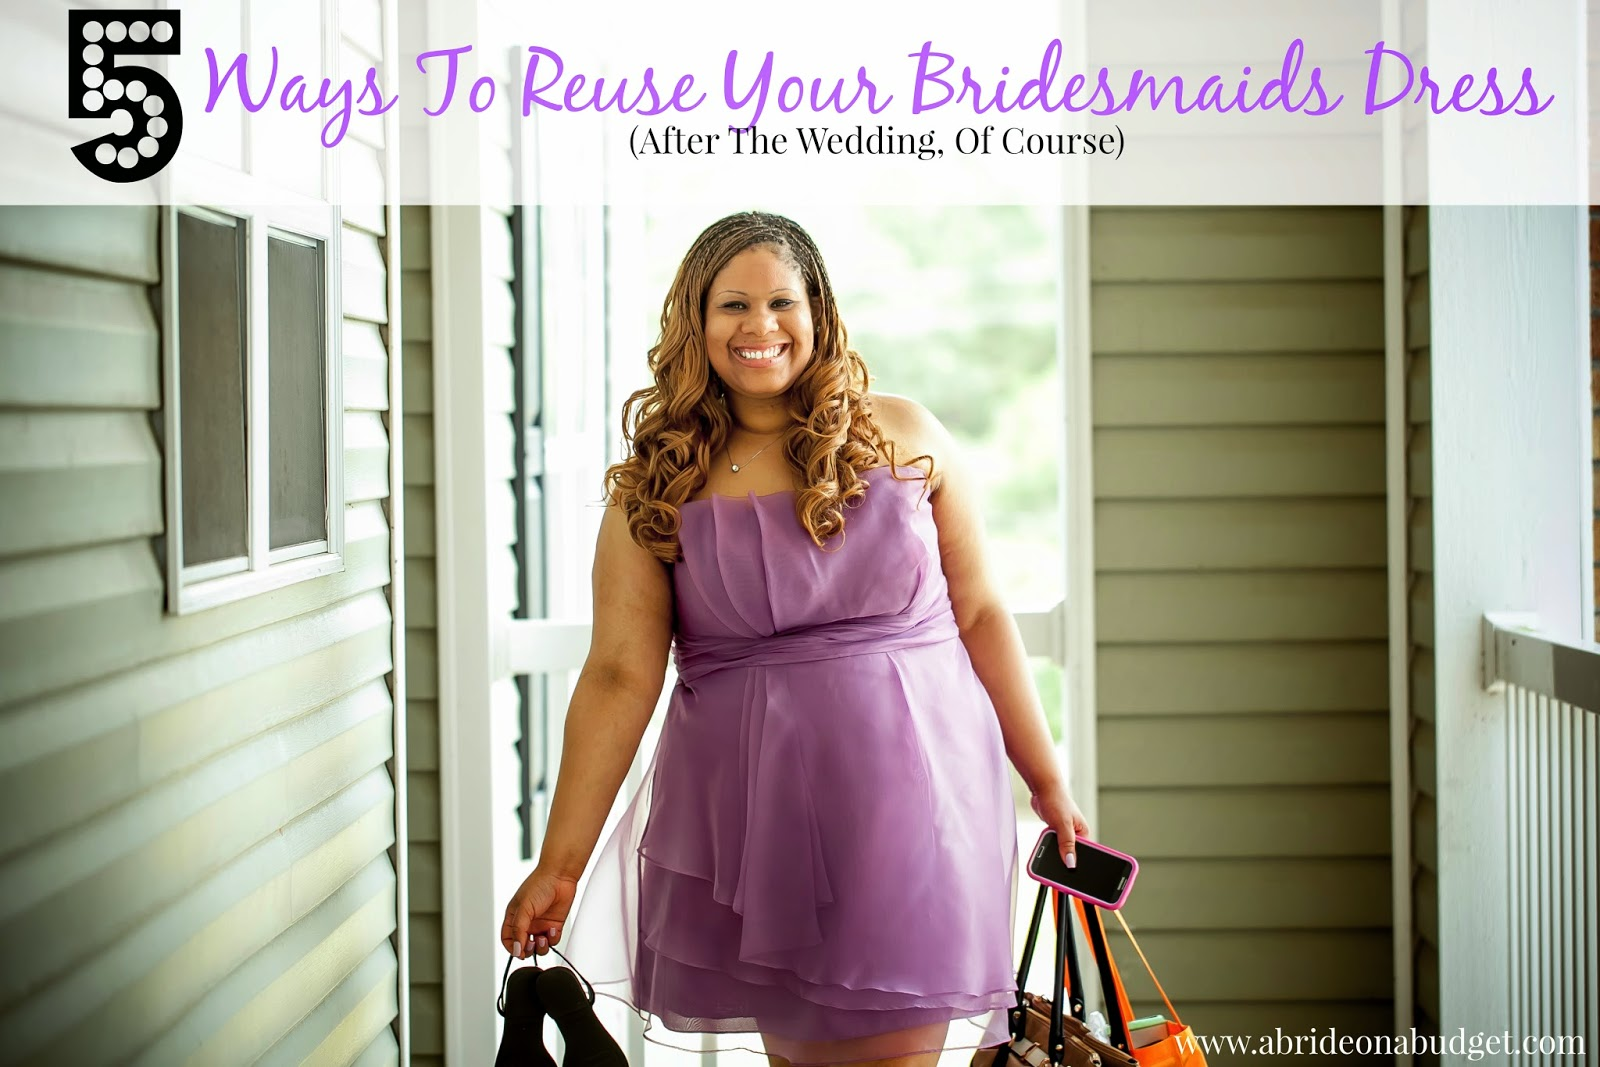 Five Ways To Reuse Your Bridesmaids Dress After The Wedding Of Course